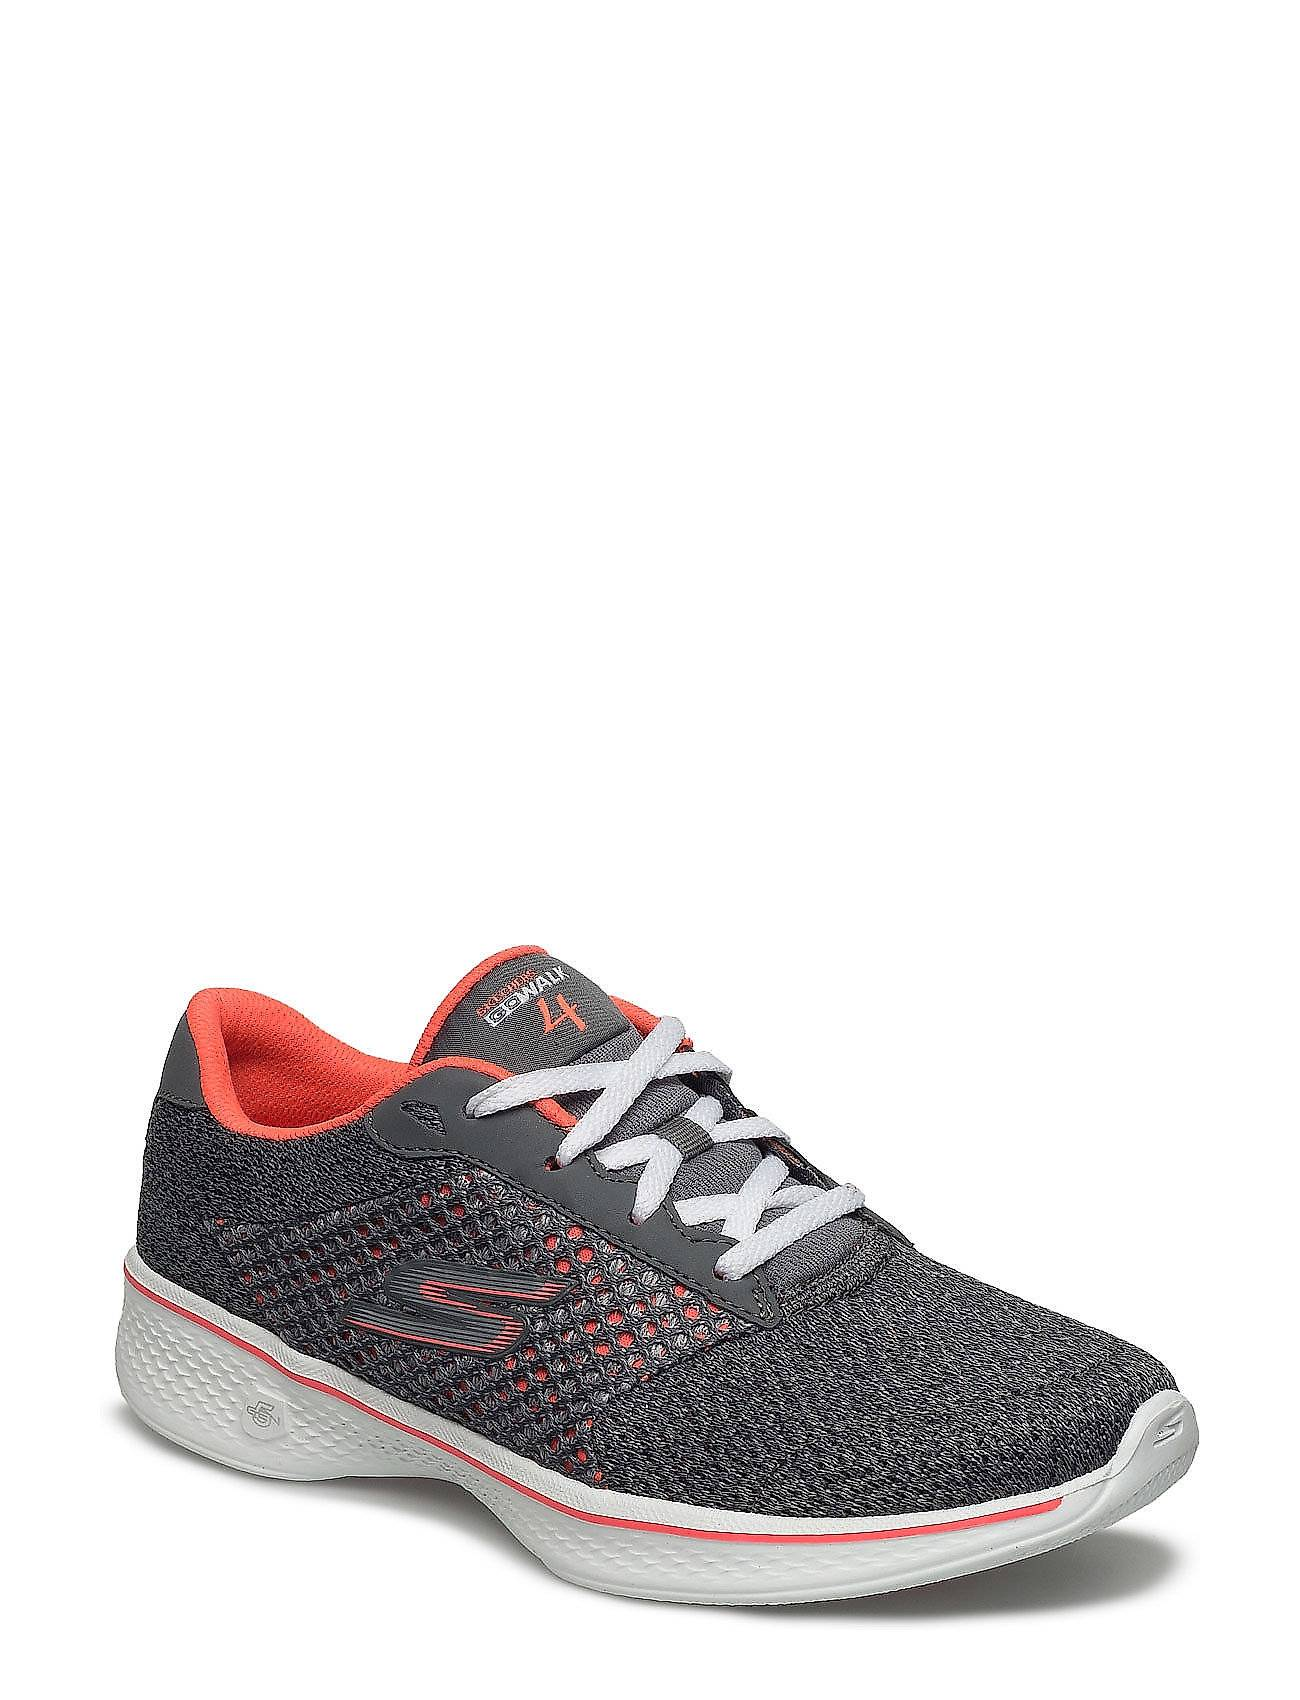 Skechers Womens Gowalk 4 - Exceed